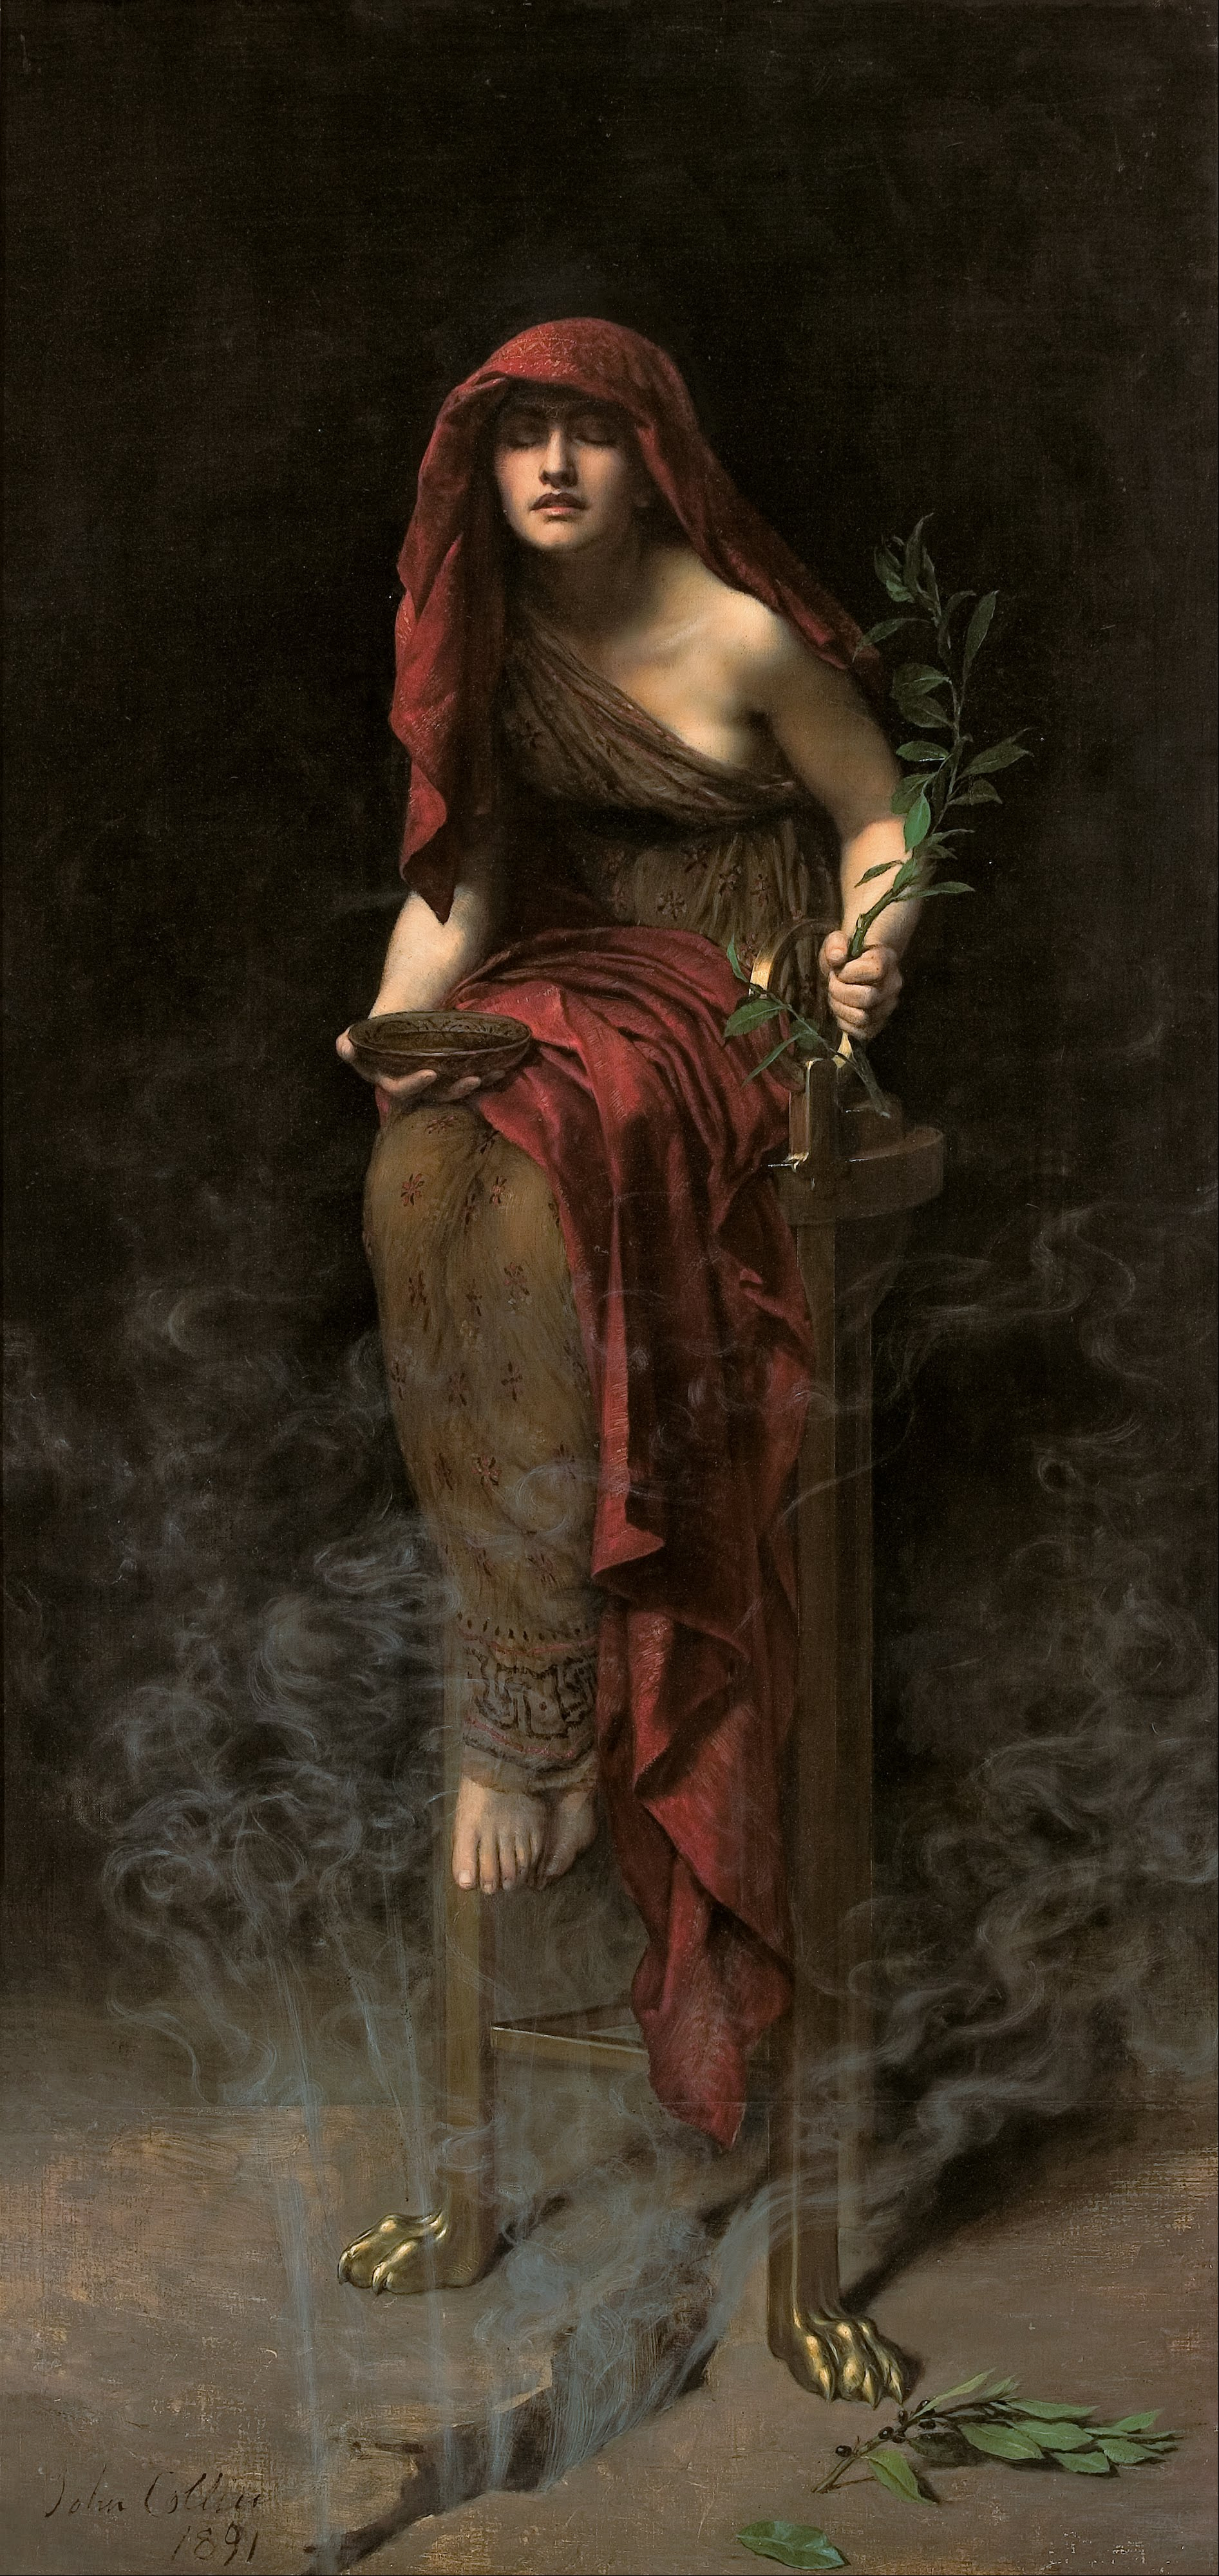 john collier's painting Priestess of Delphi